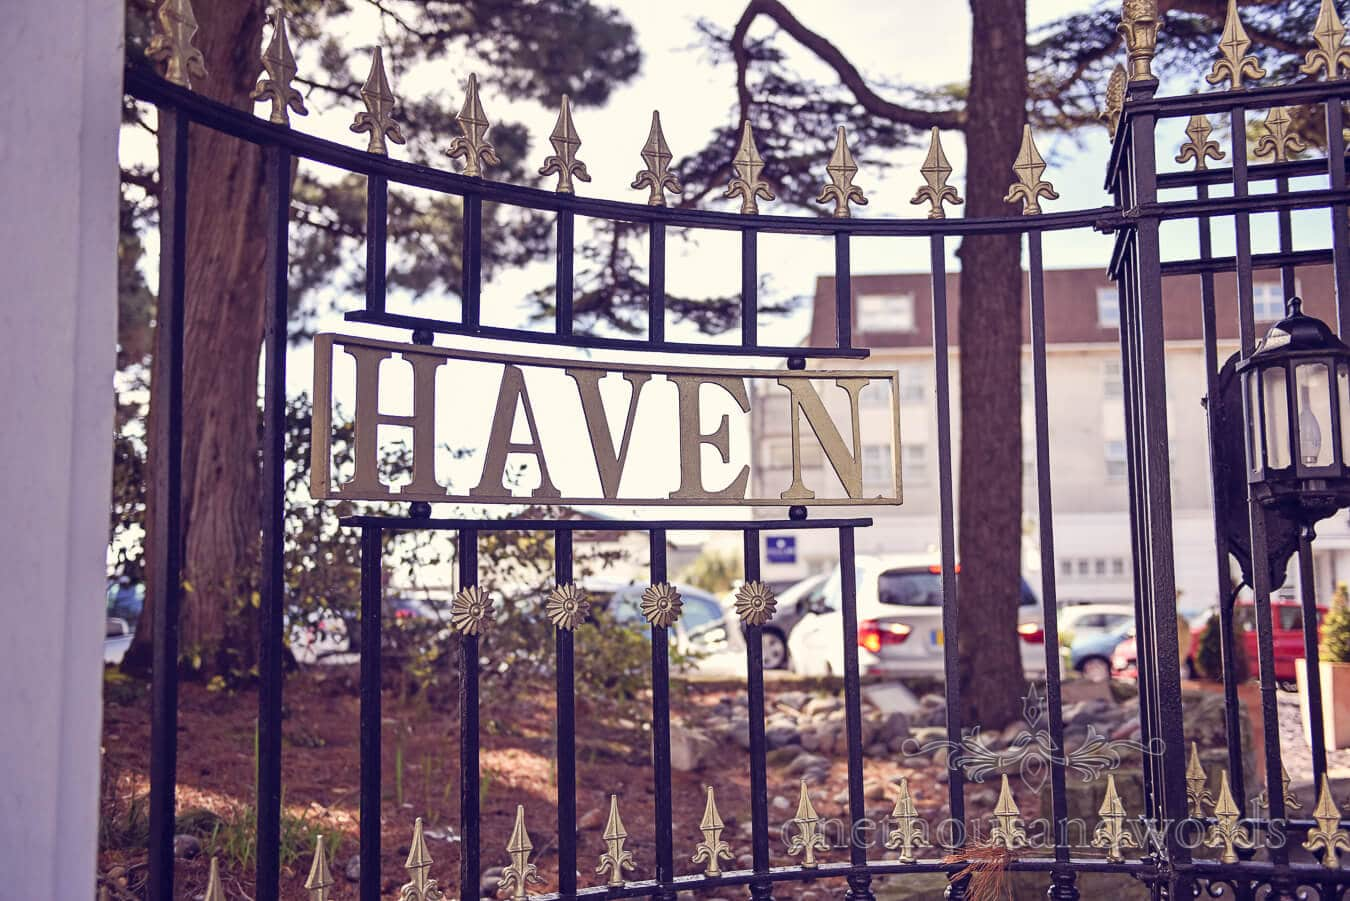 Hotel gate at the Haven